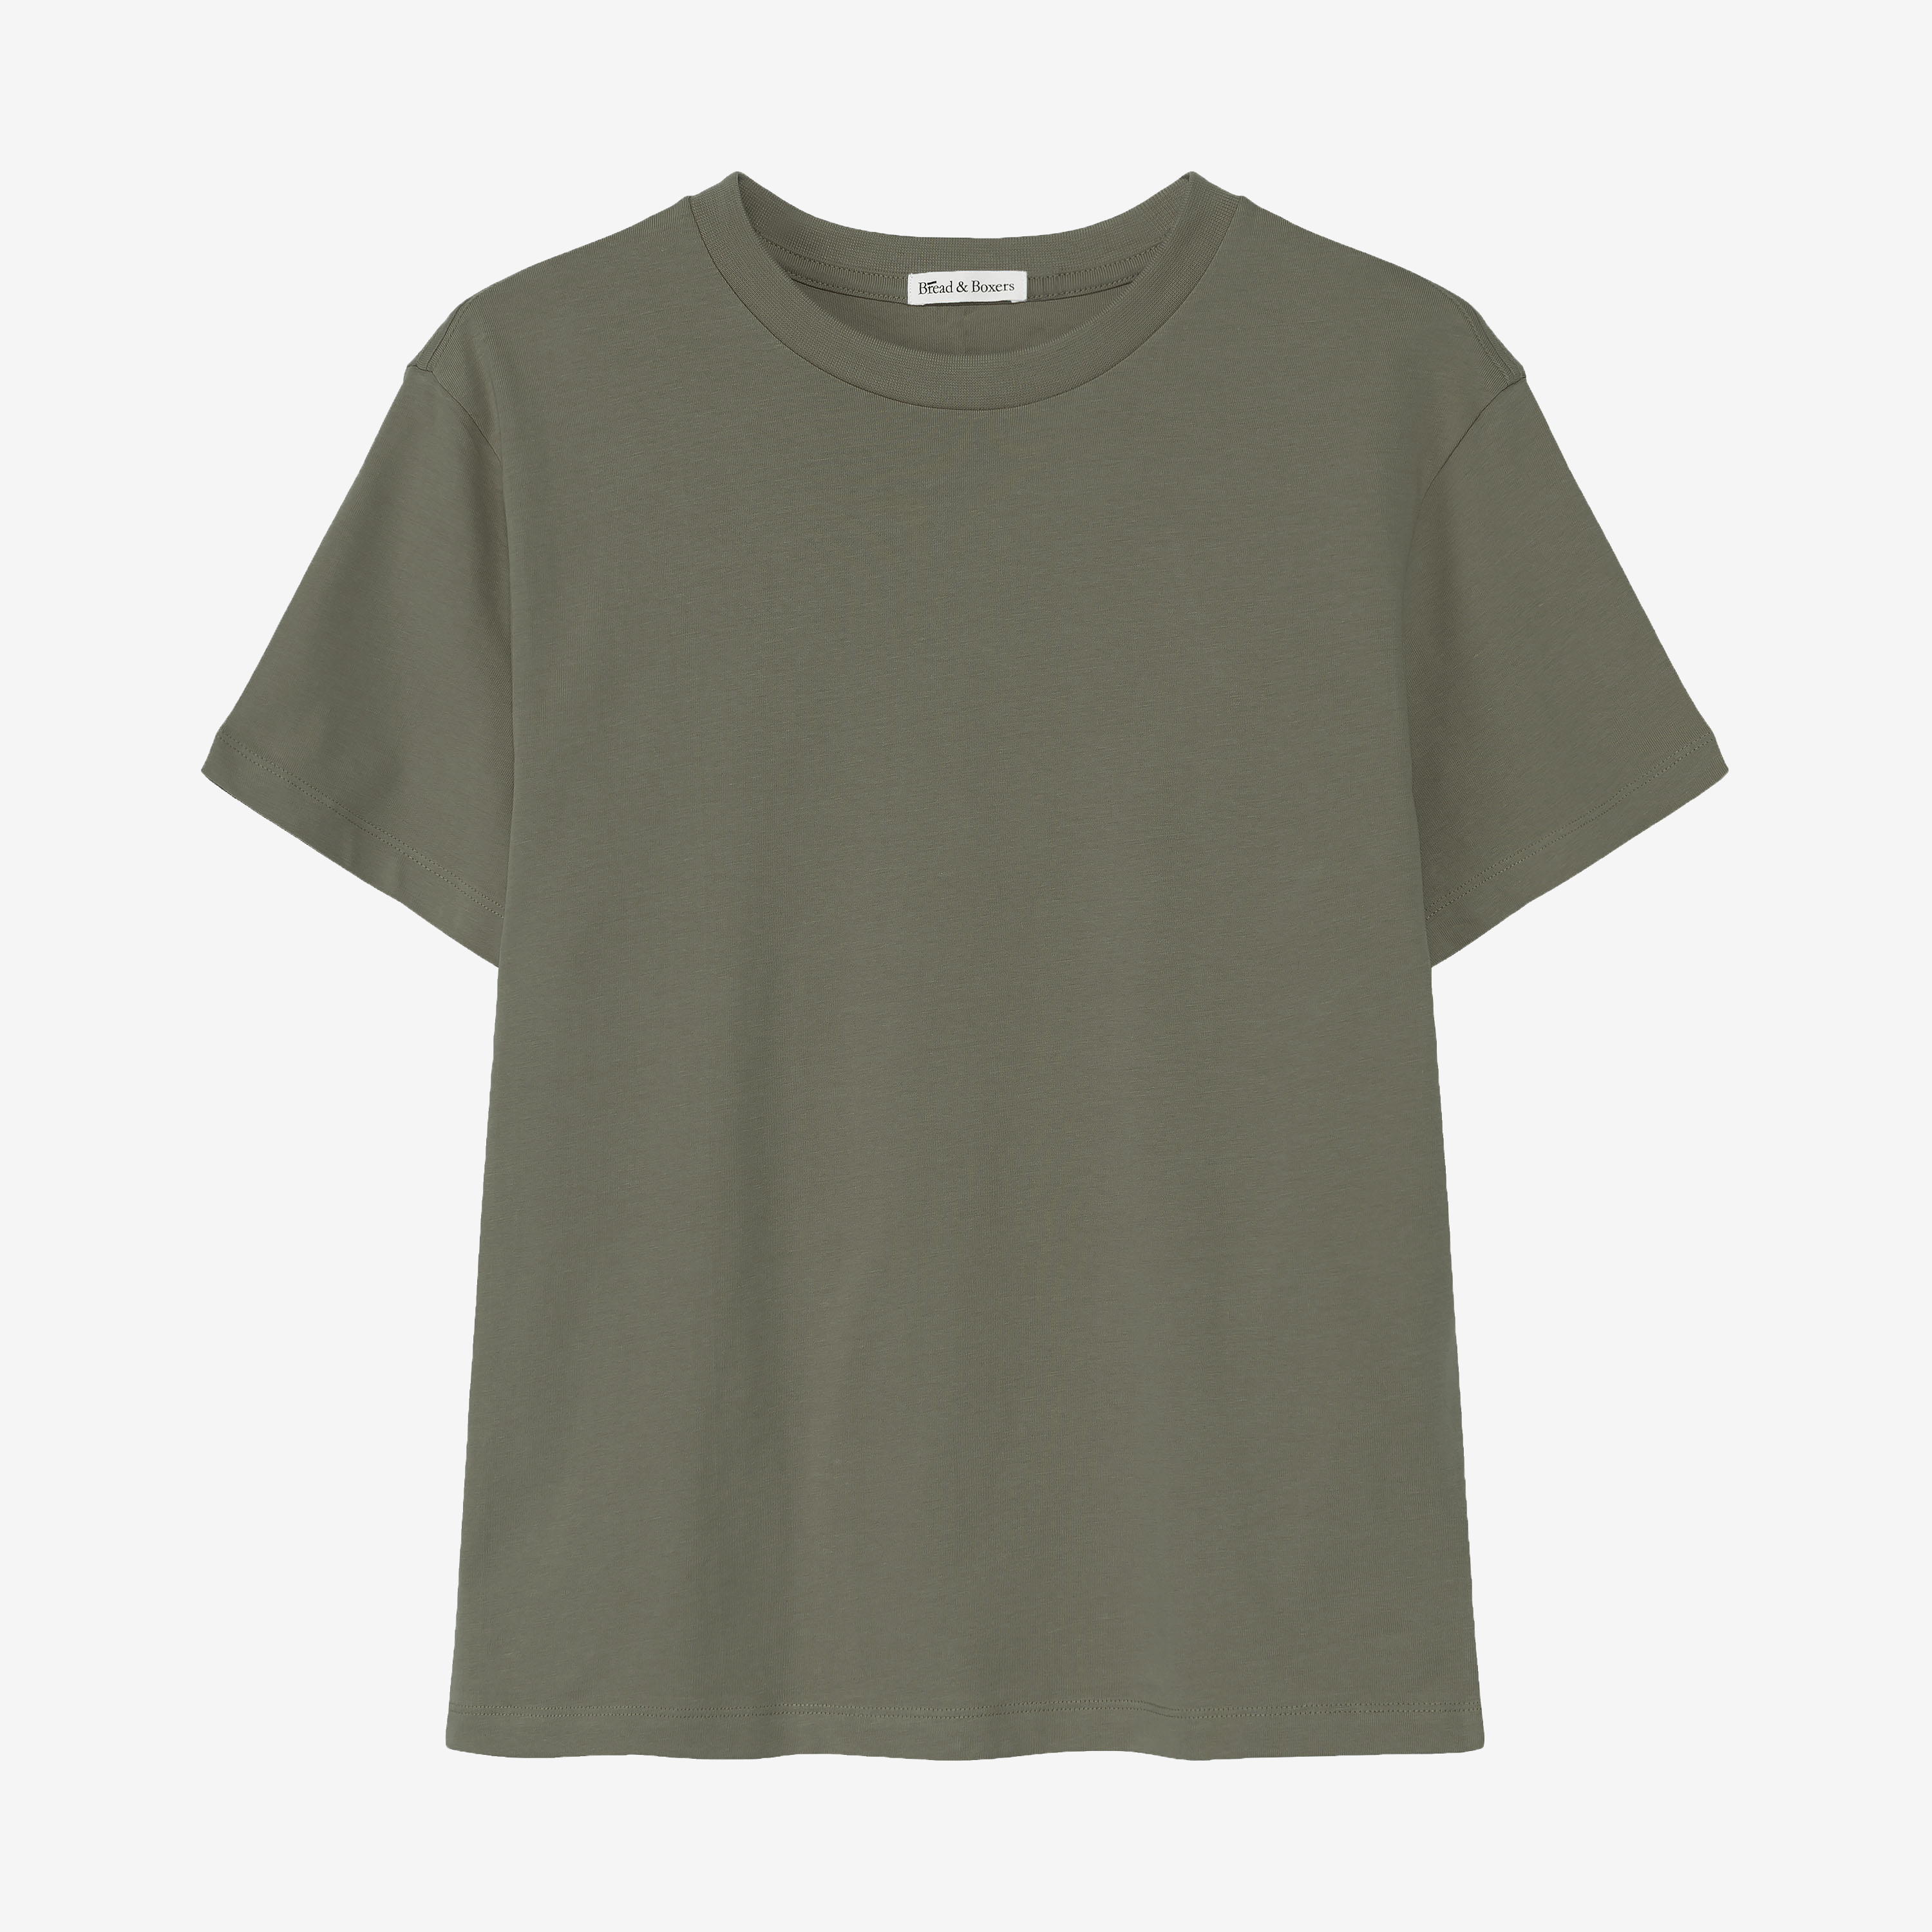 634-40_T-shirt_classic_olive-green_CO-A